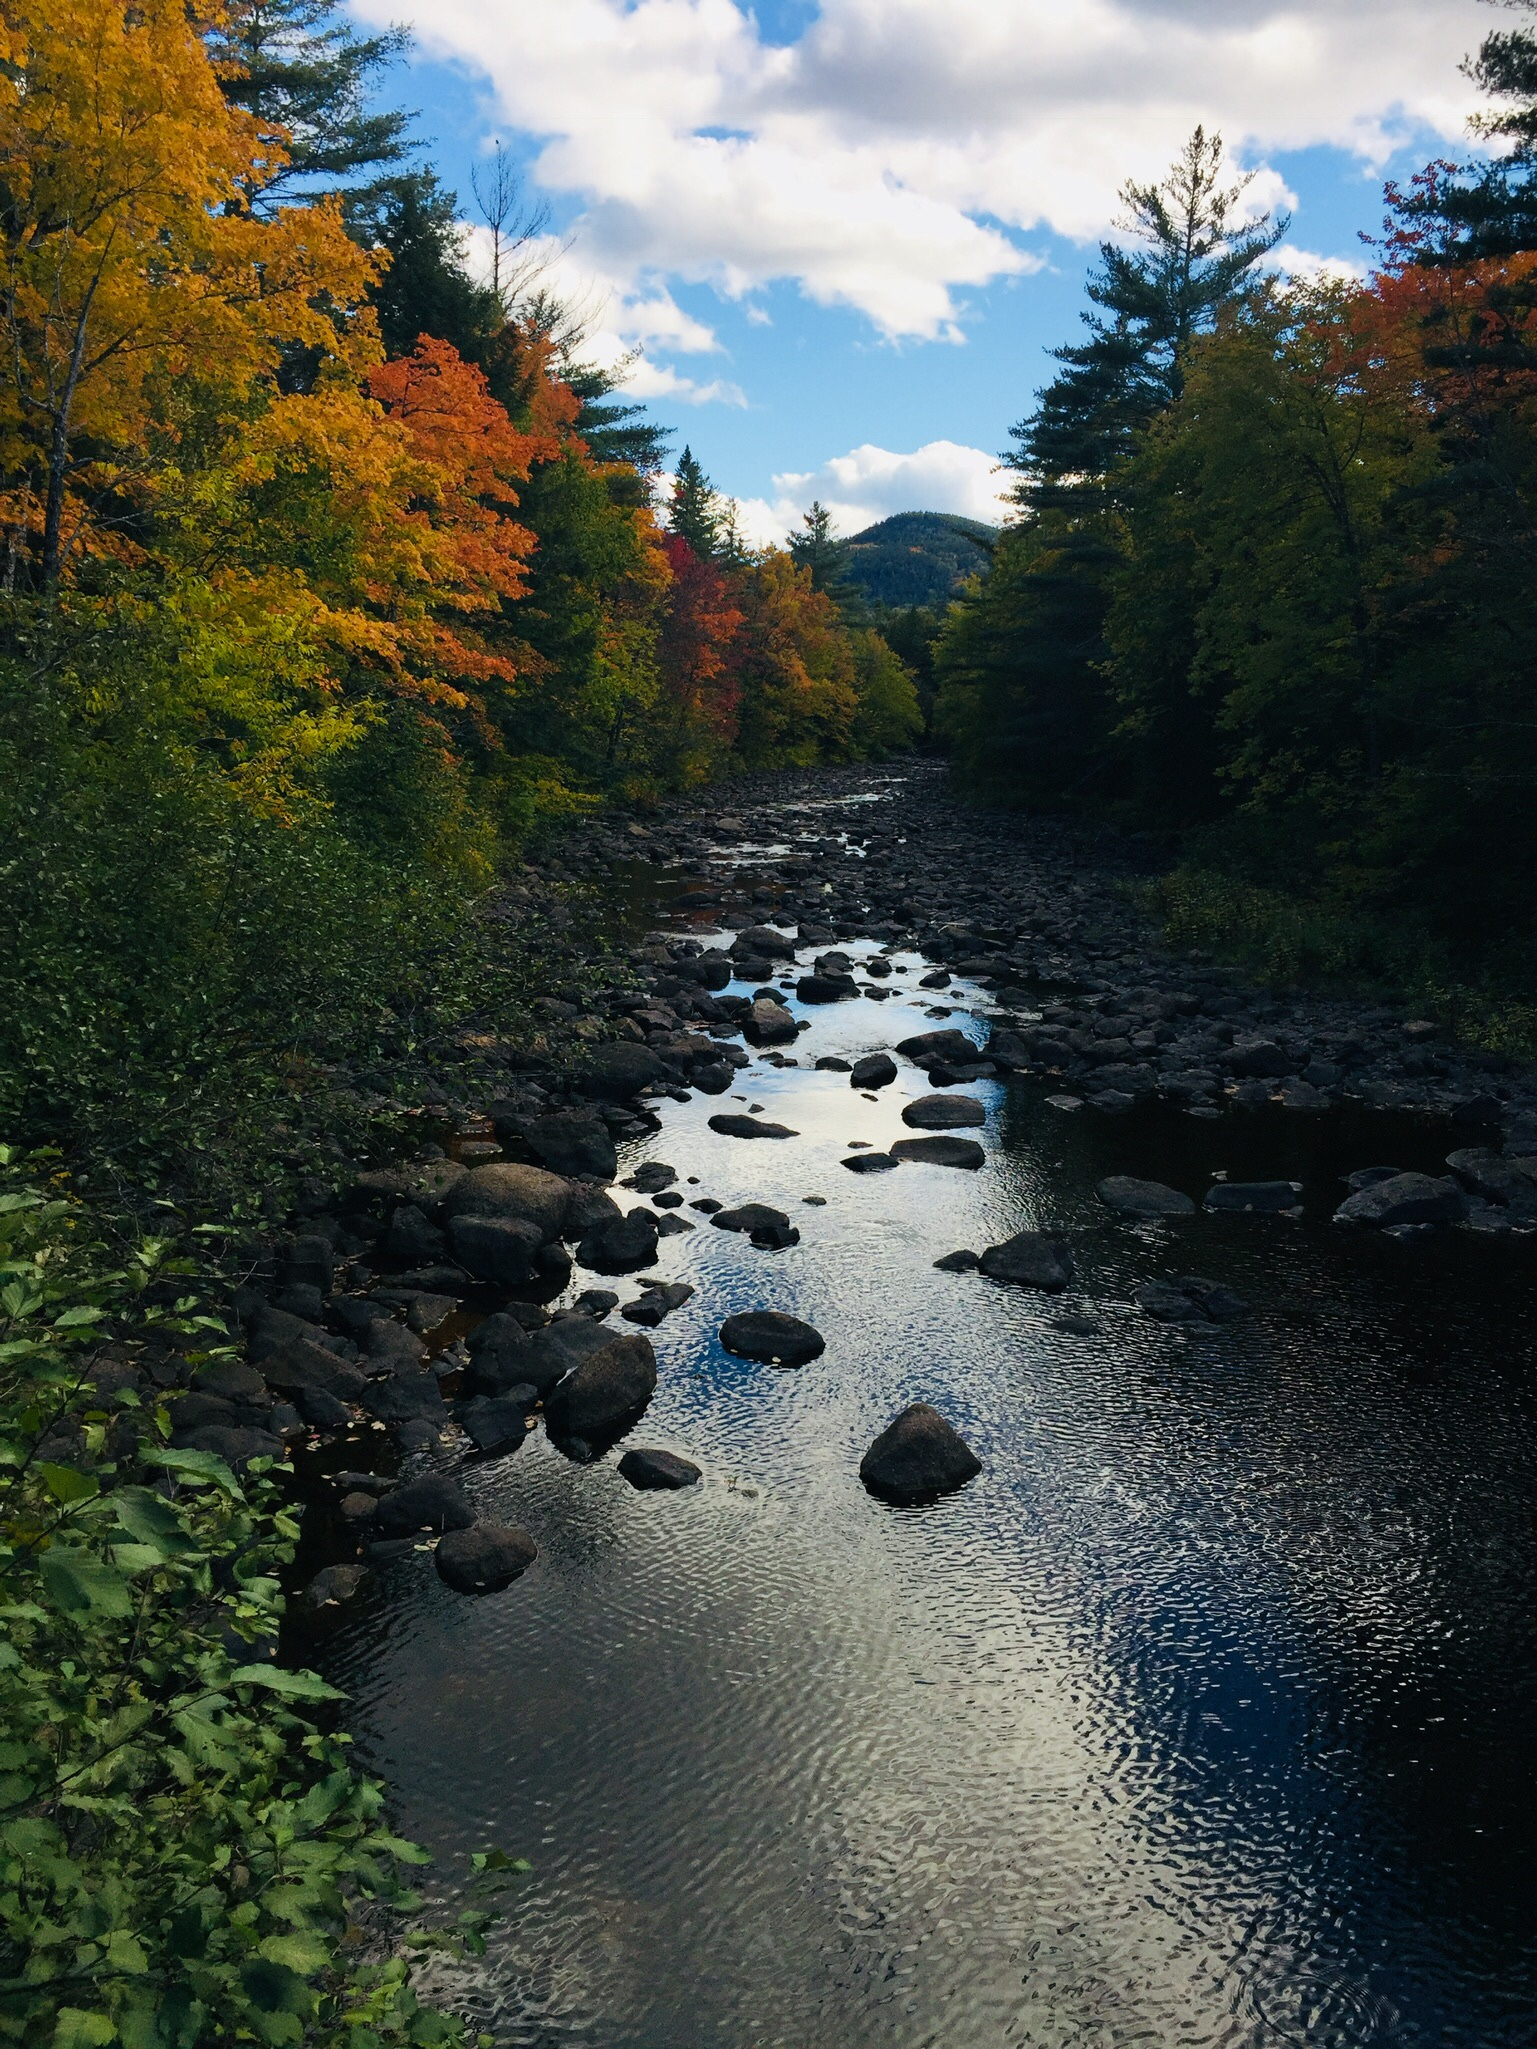 Fall colors on Pollywog Stream, 100 Mile Wilderness